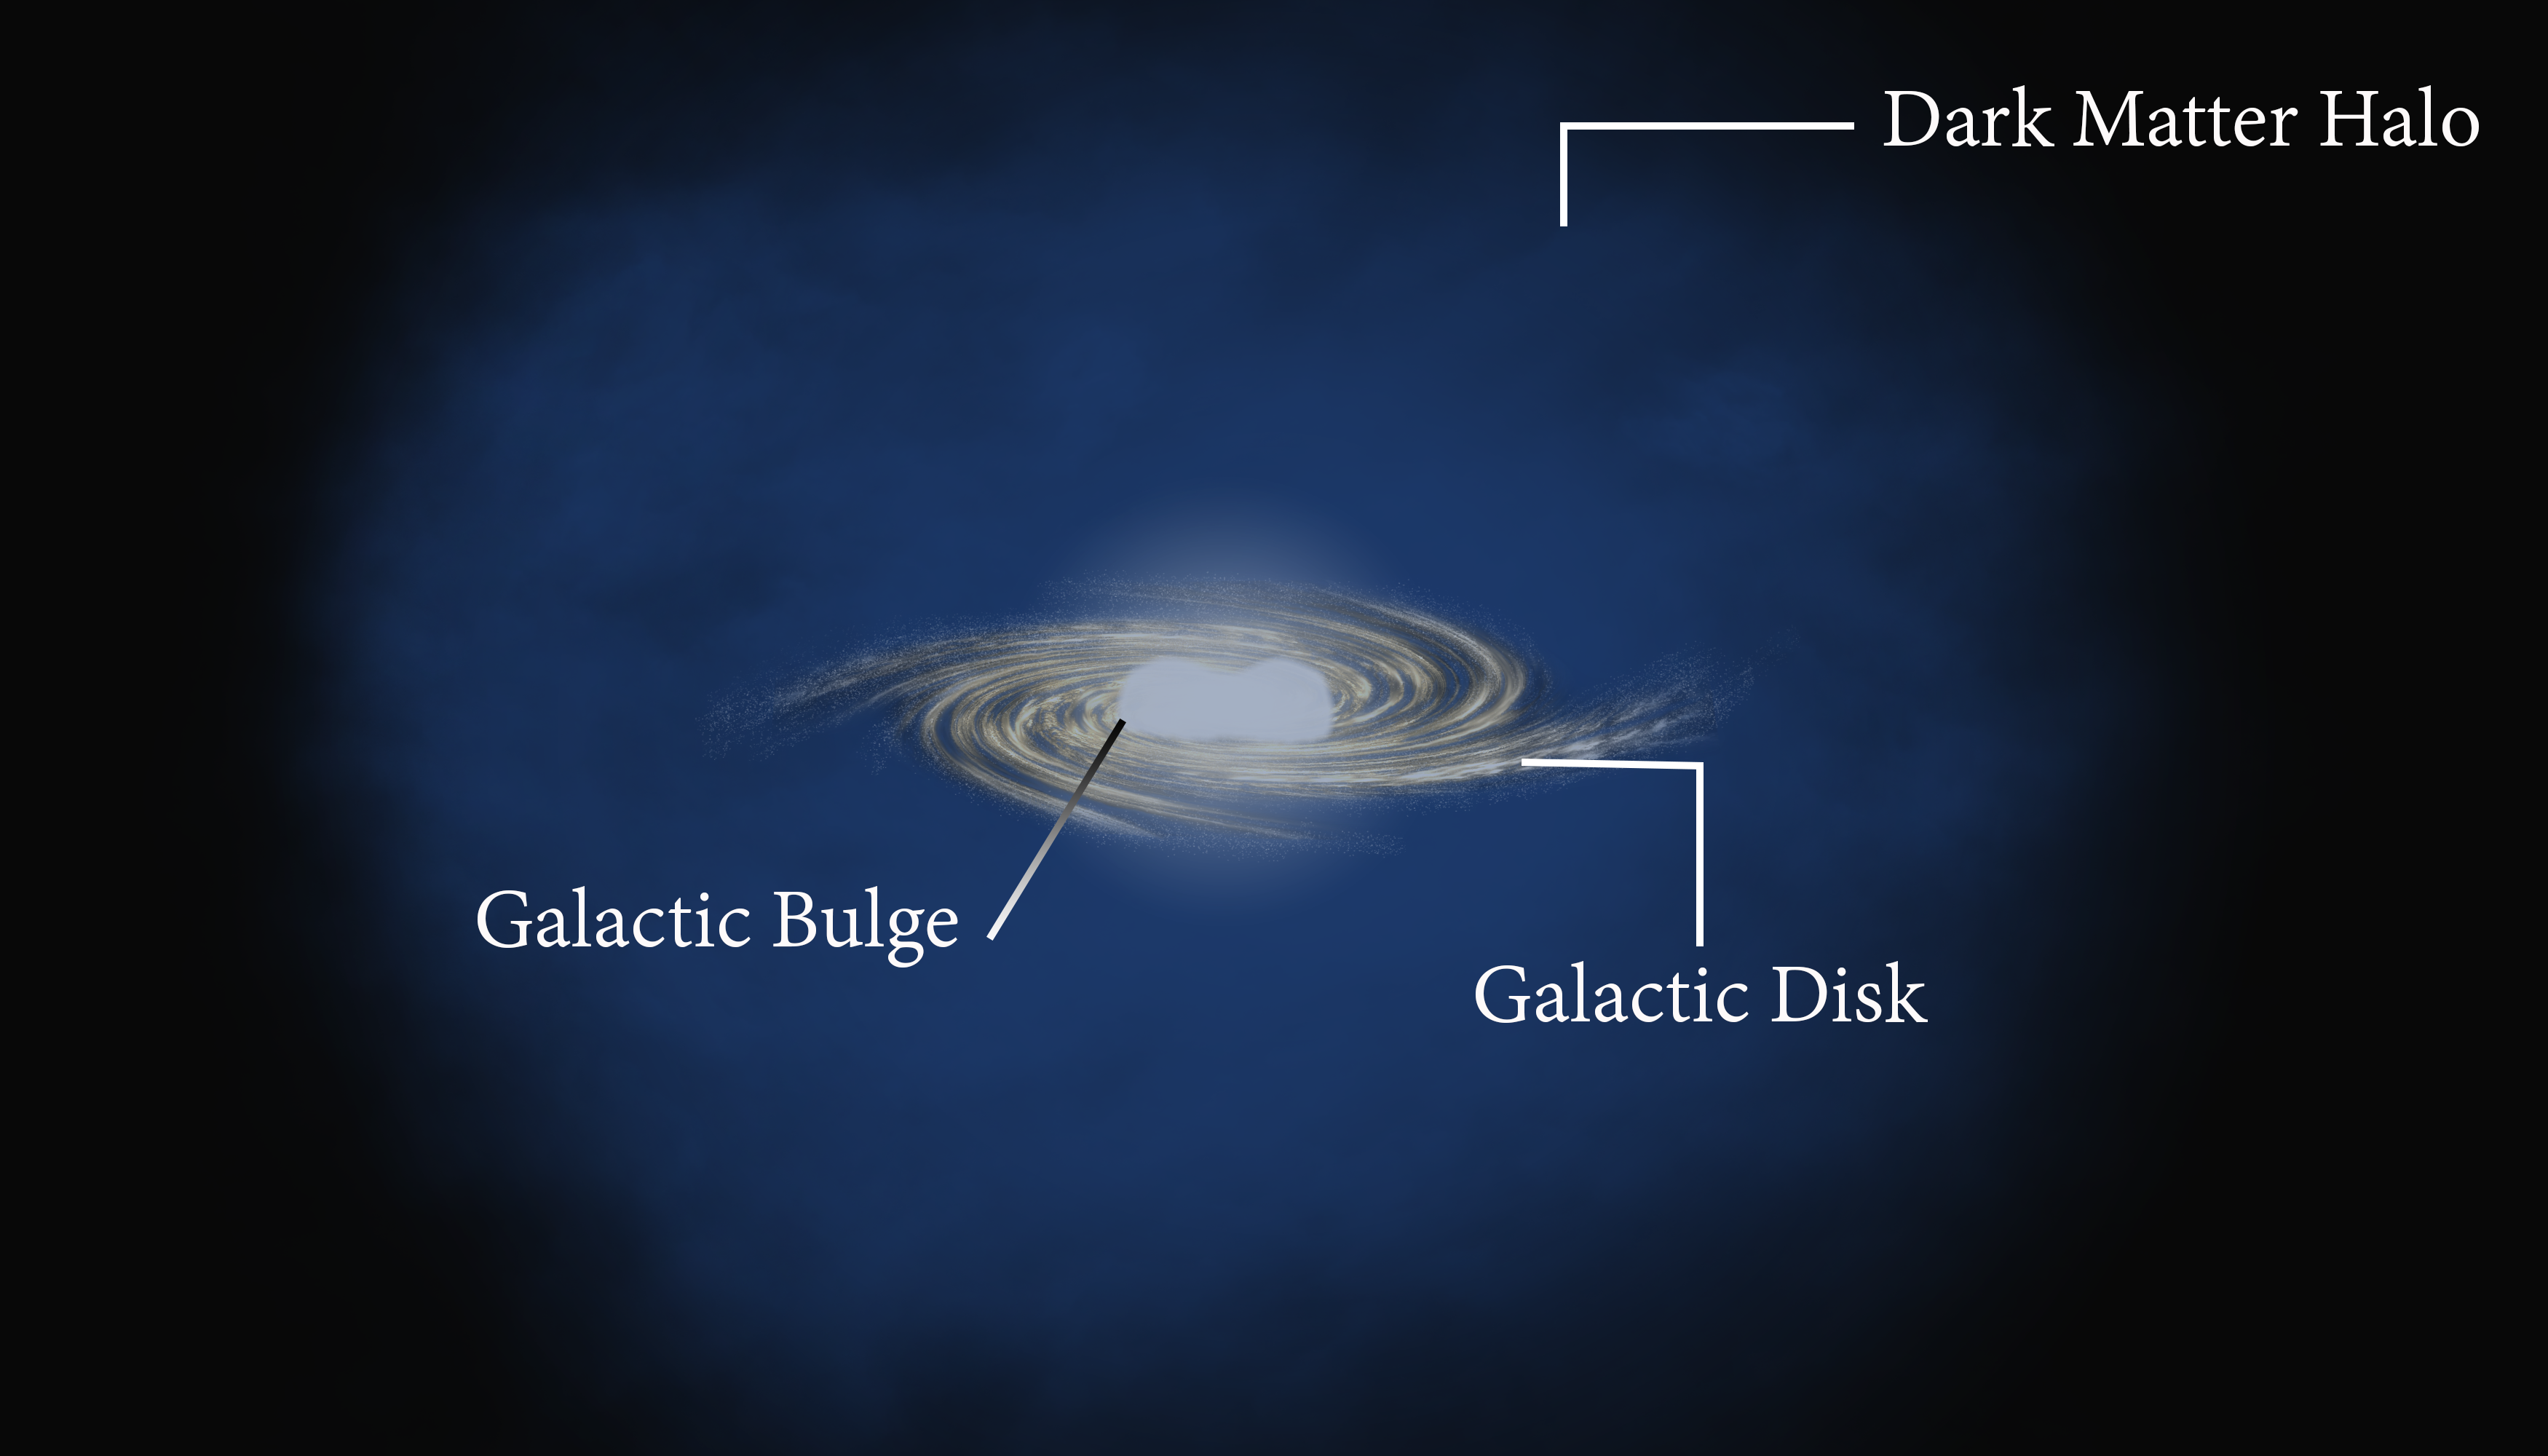 Structure of the Milky Way Galaxy